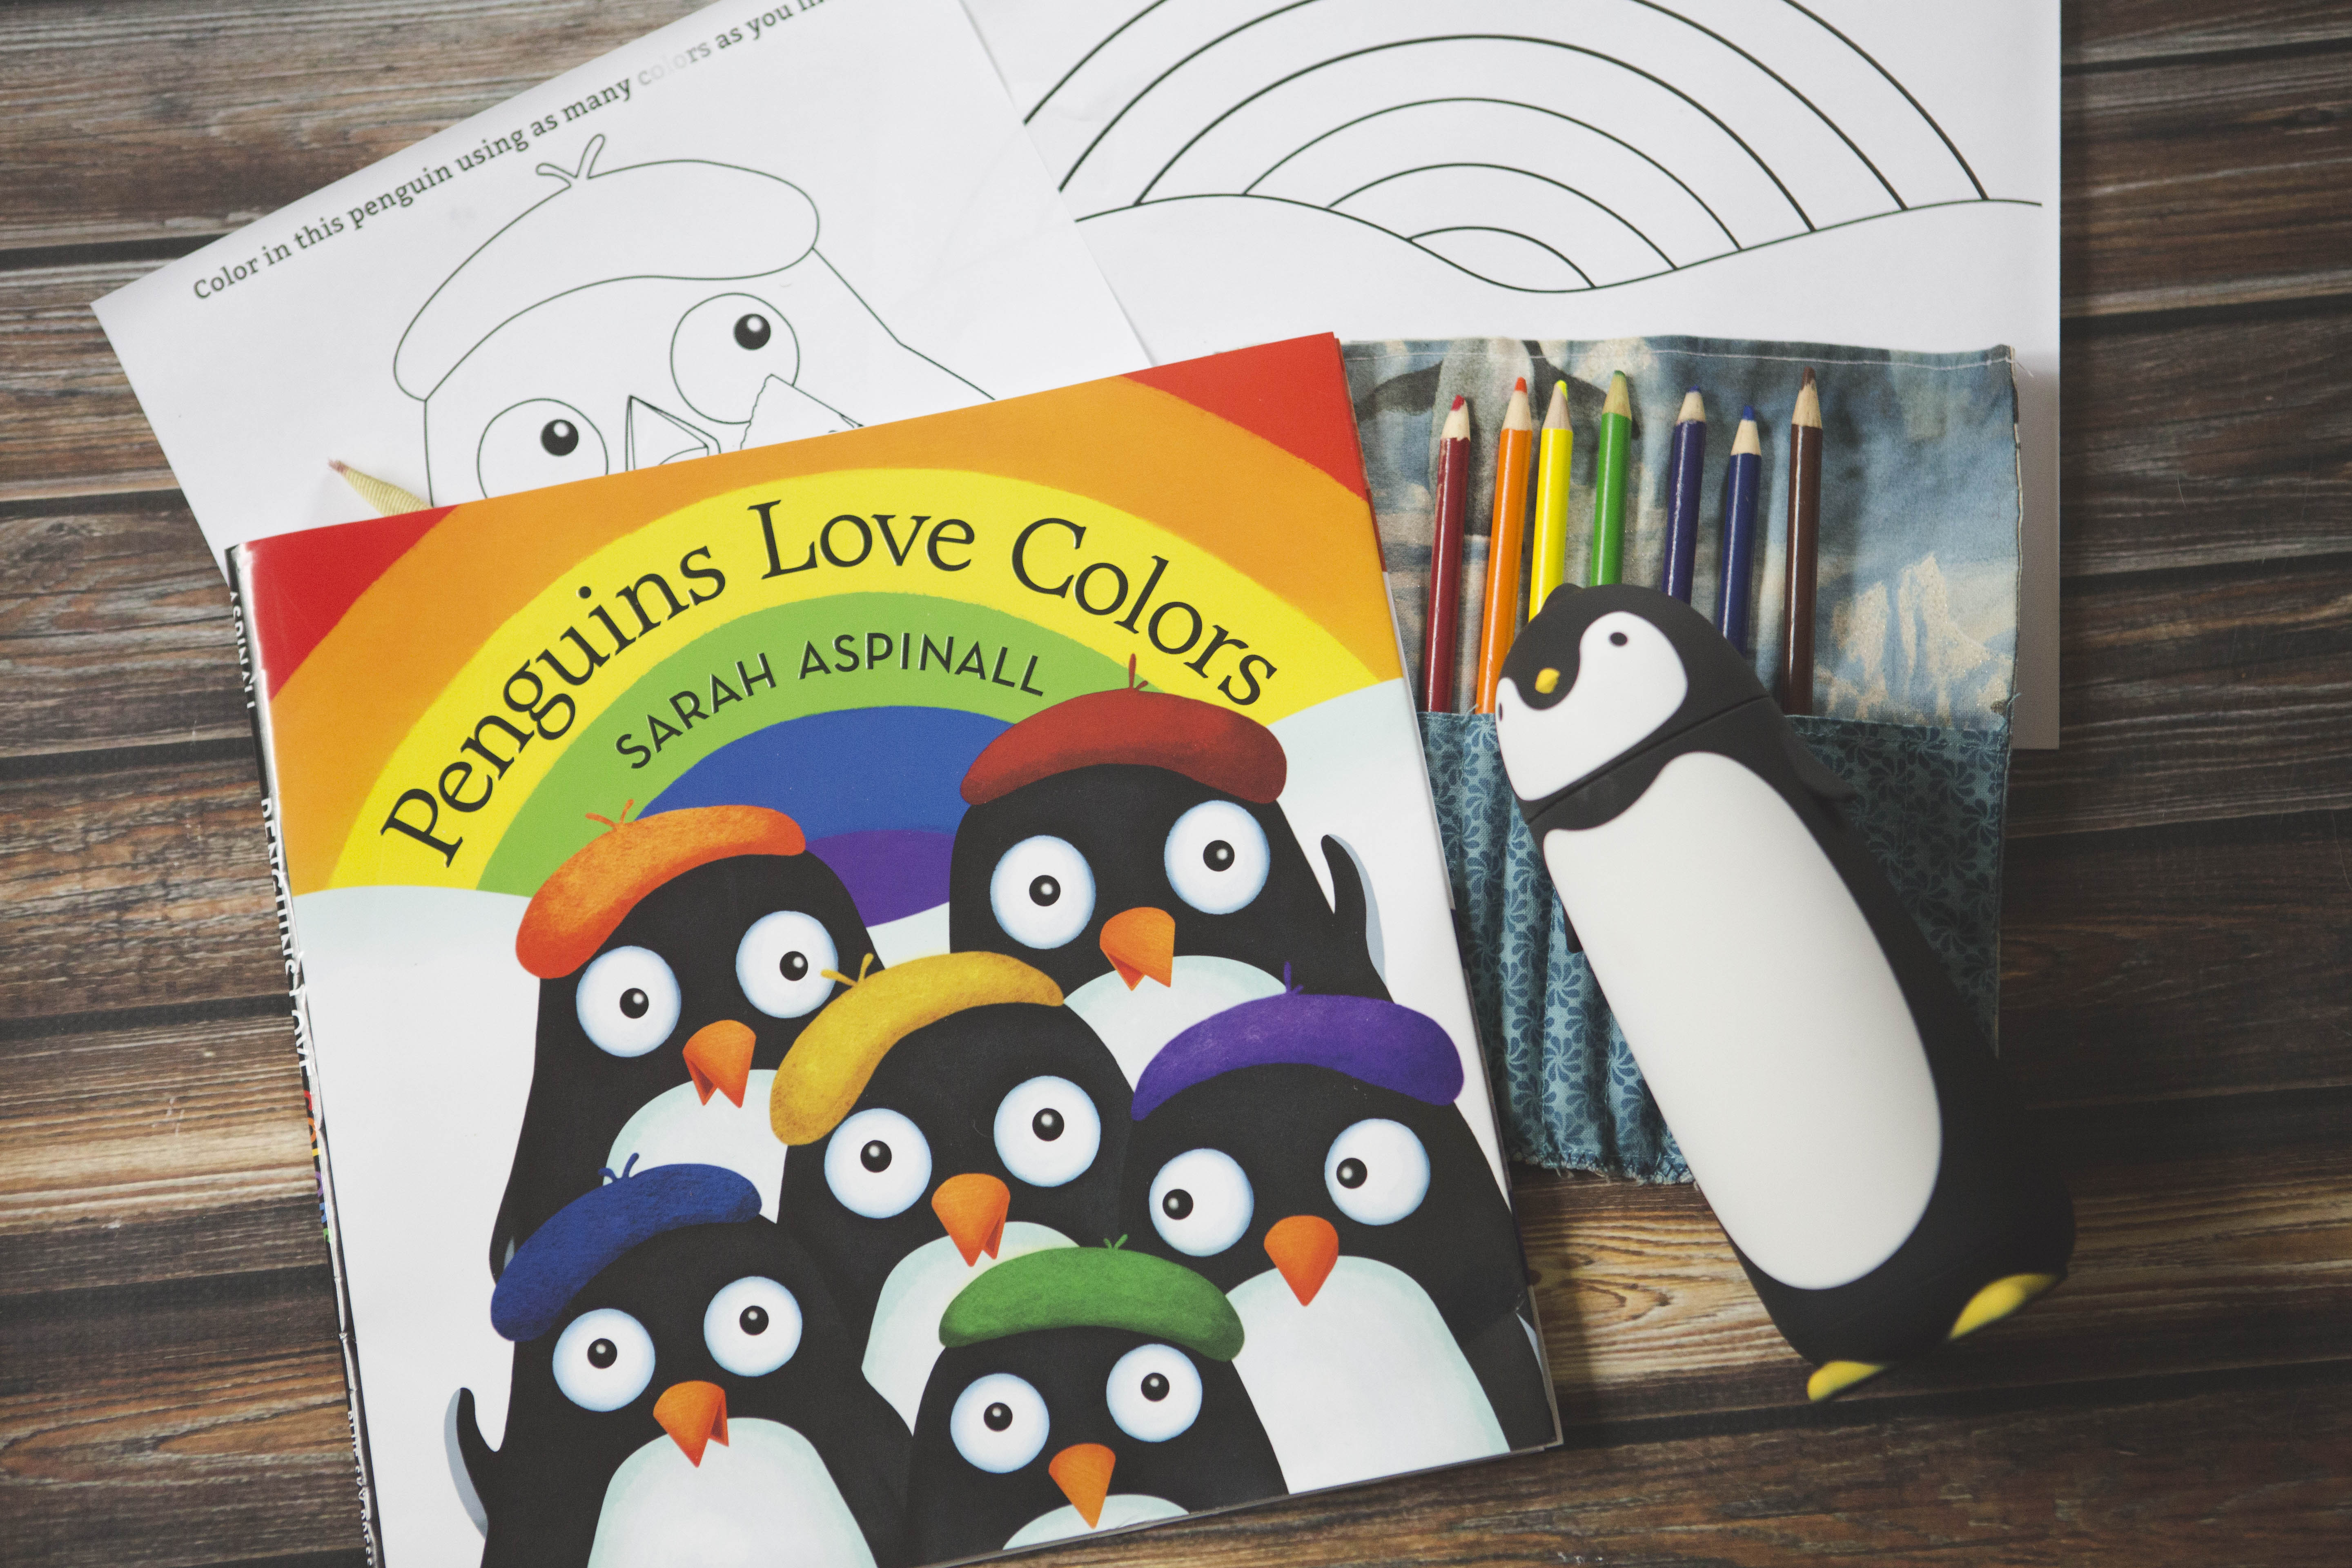 Penguins Love Colors!